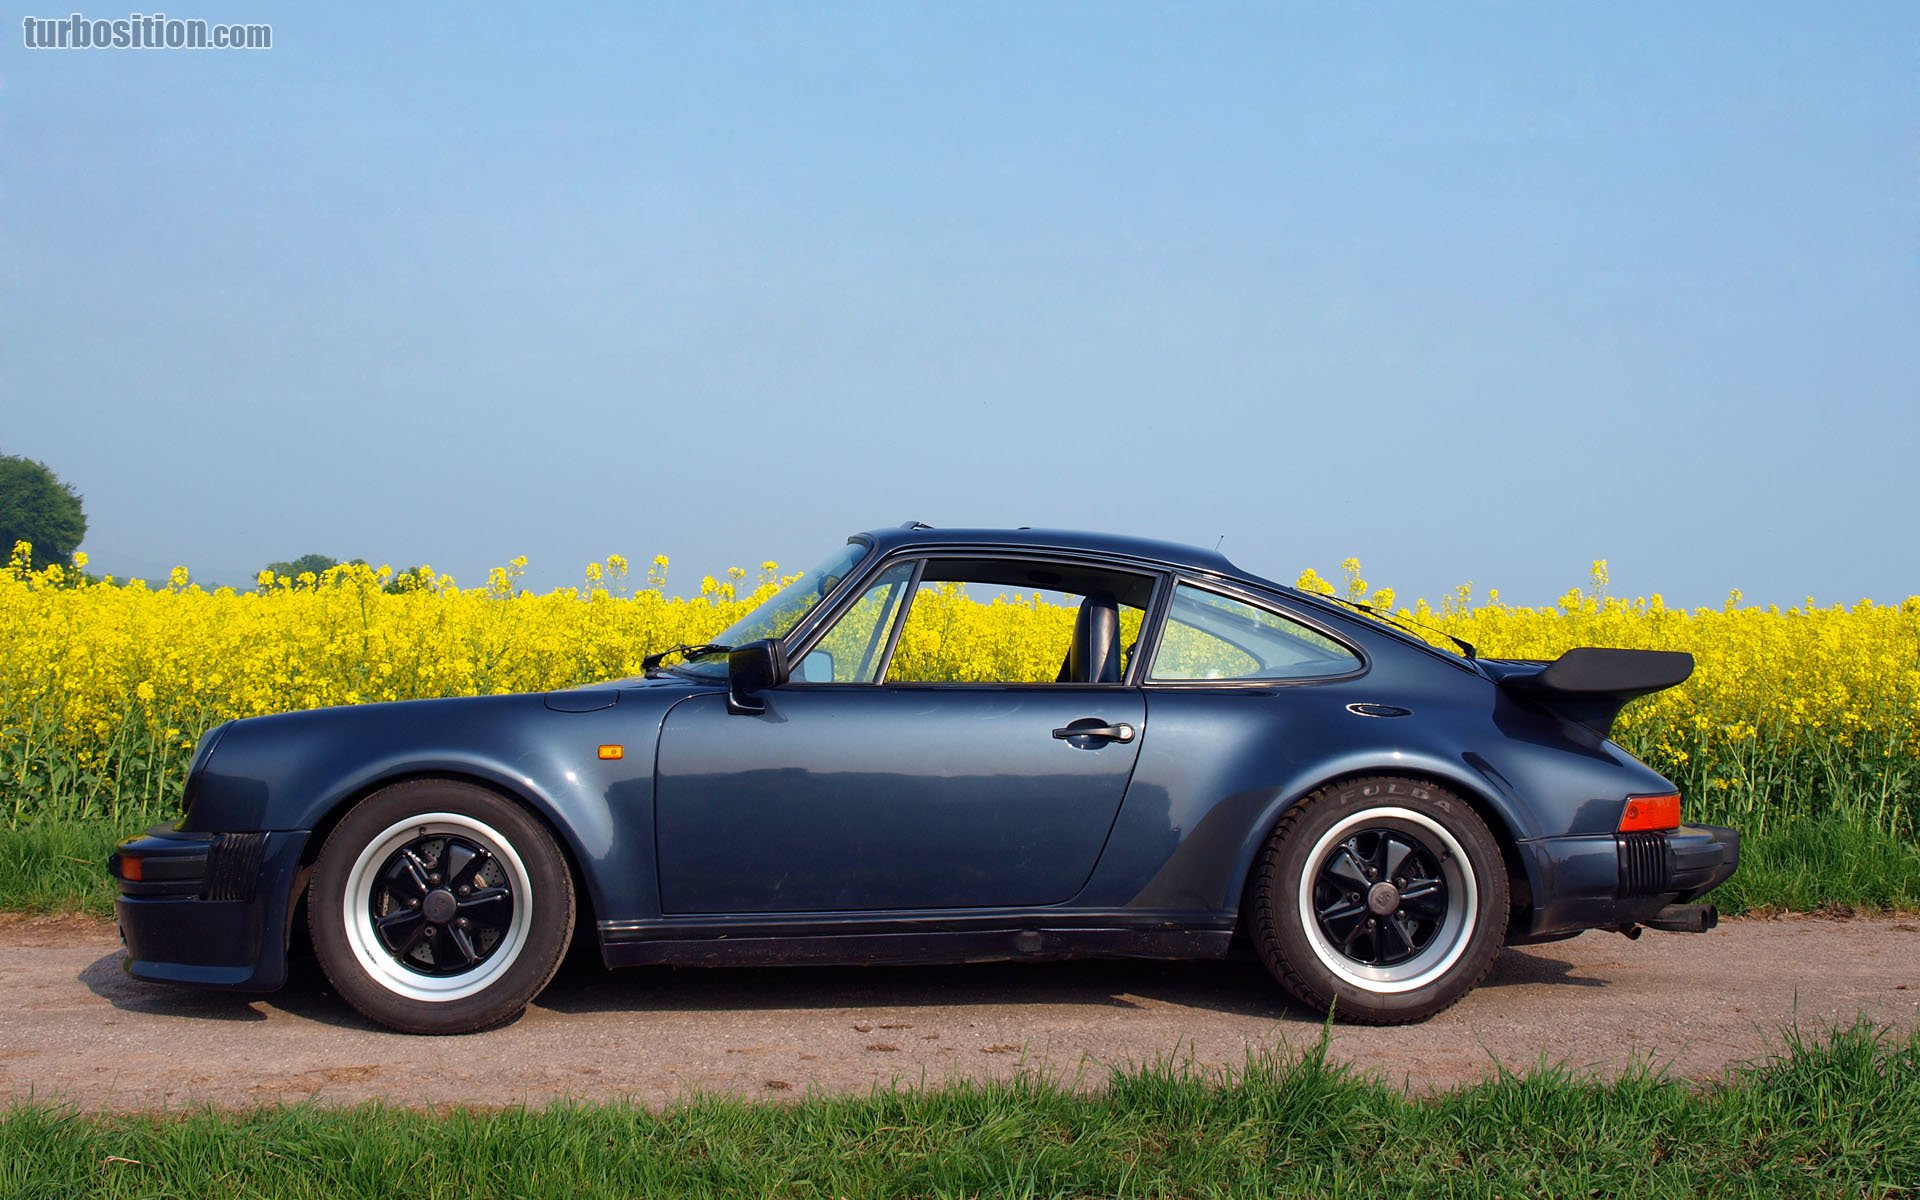 Porsche 930 Prussian Blue Metallic Porsche Of The Month 2015 06 Turbosition